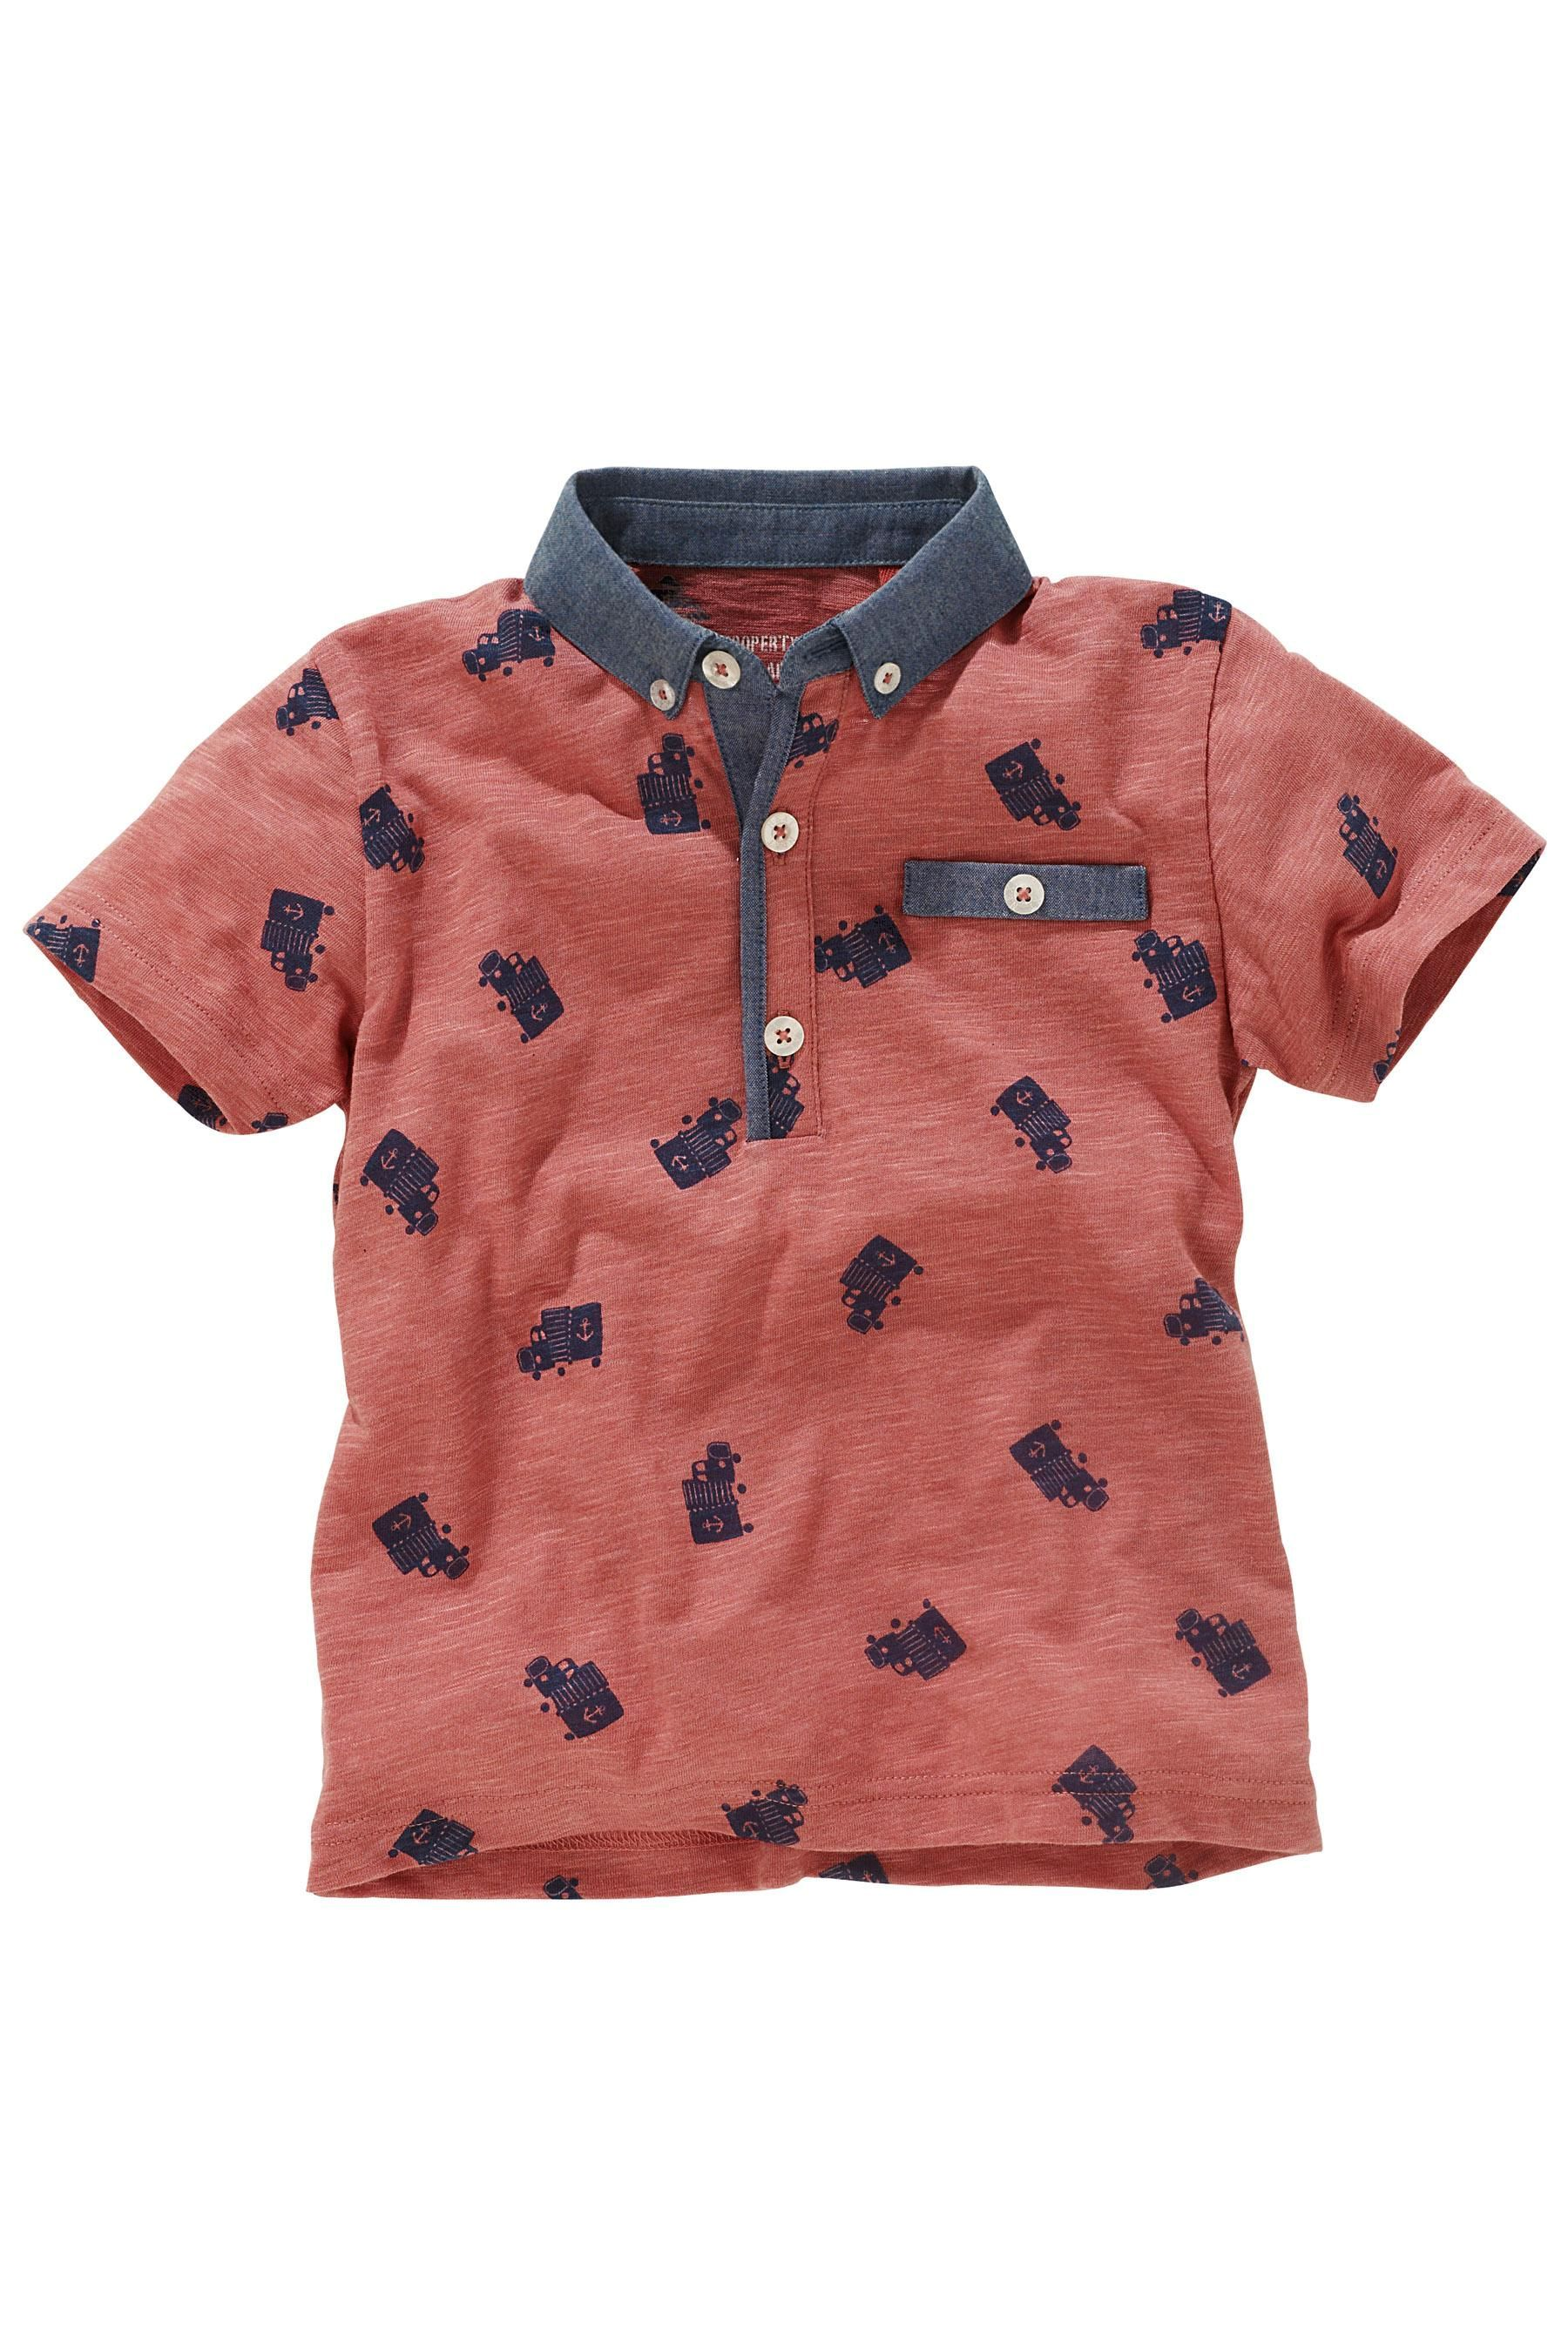 Buy All Over Print Truck Poloshirt (3mths-6yrs) from the Next UK online shop